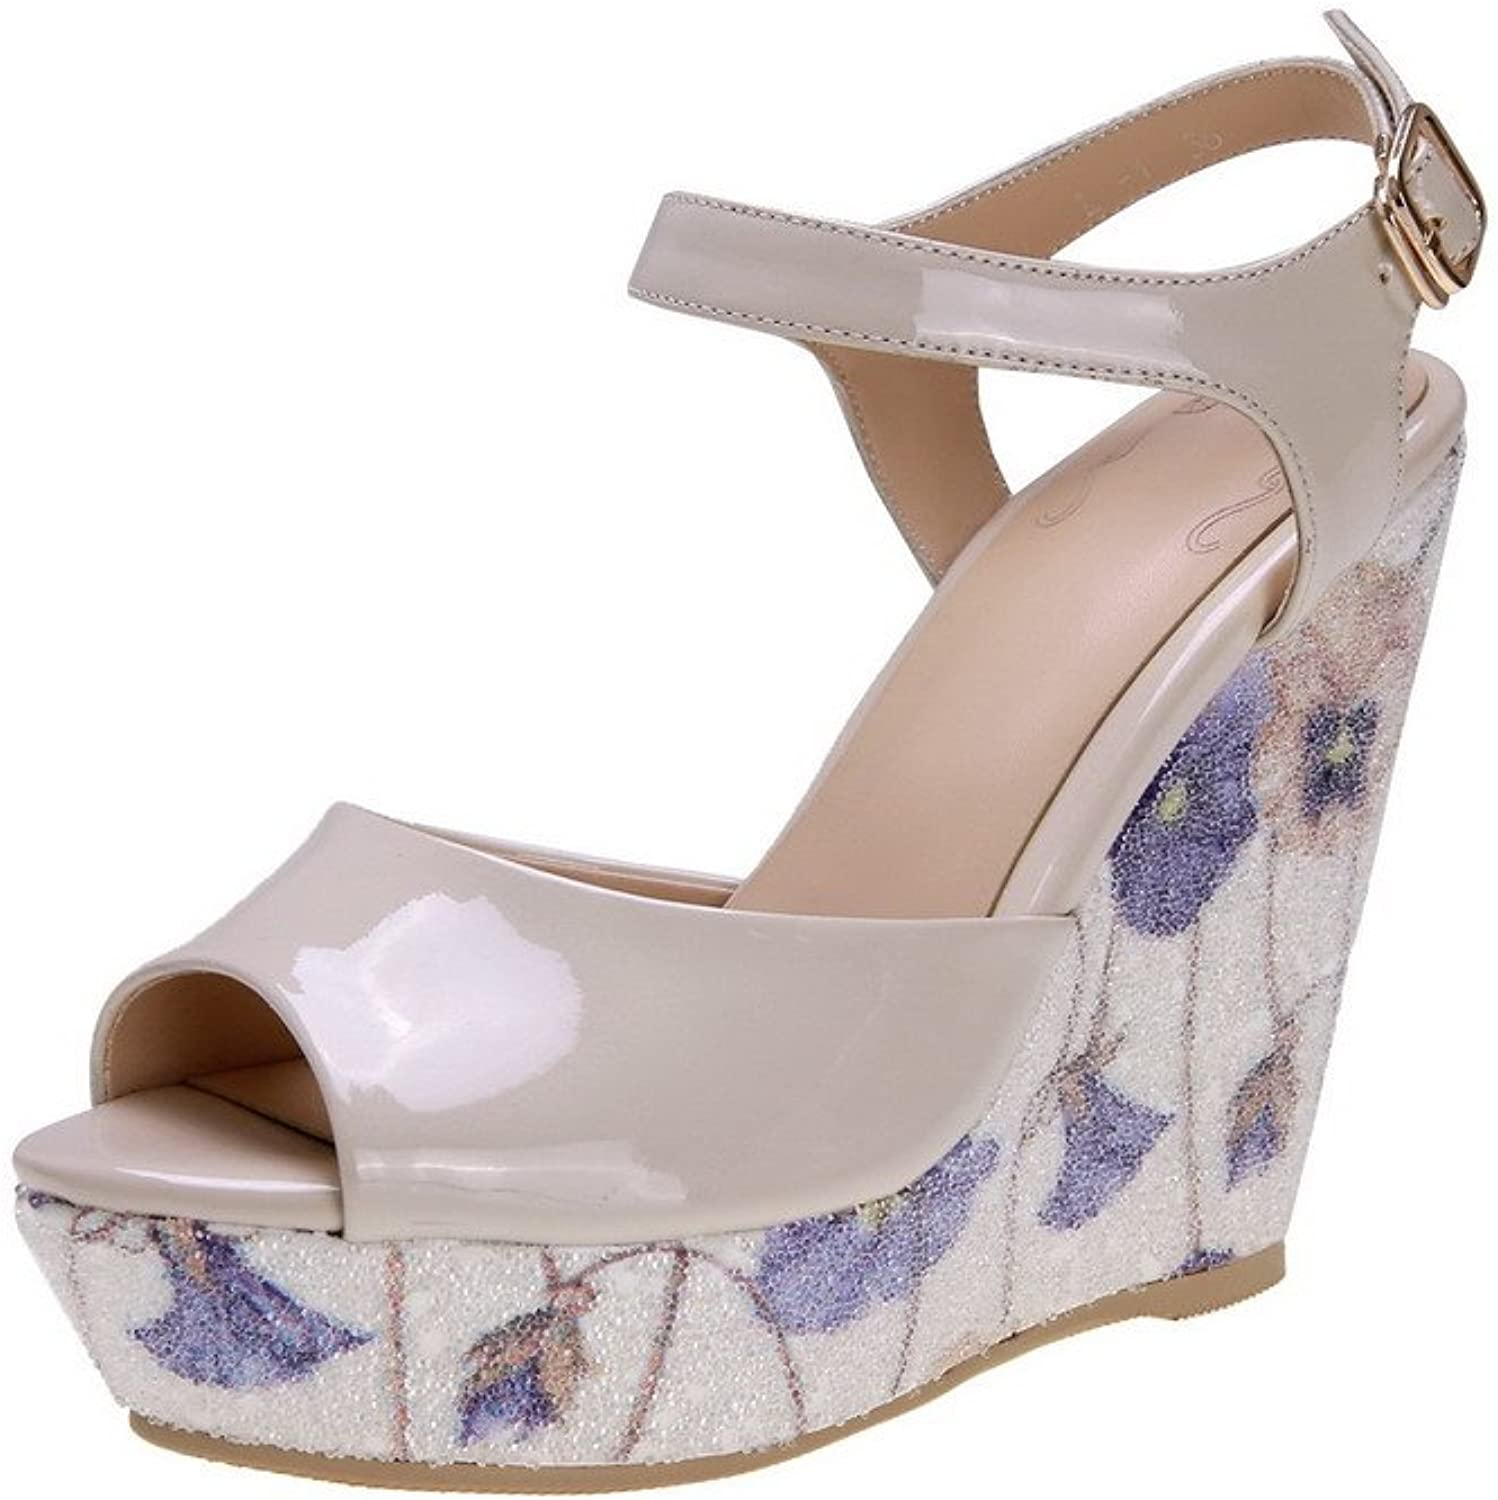 WeenFashion Womens Cow Leather Material Solid Sandals with Wedge and Peep Toes